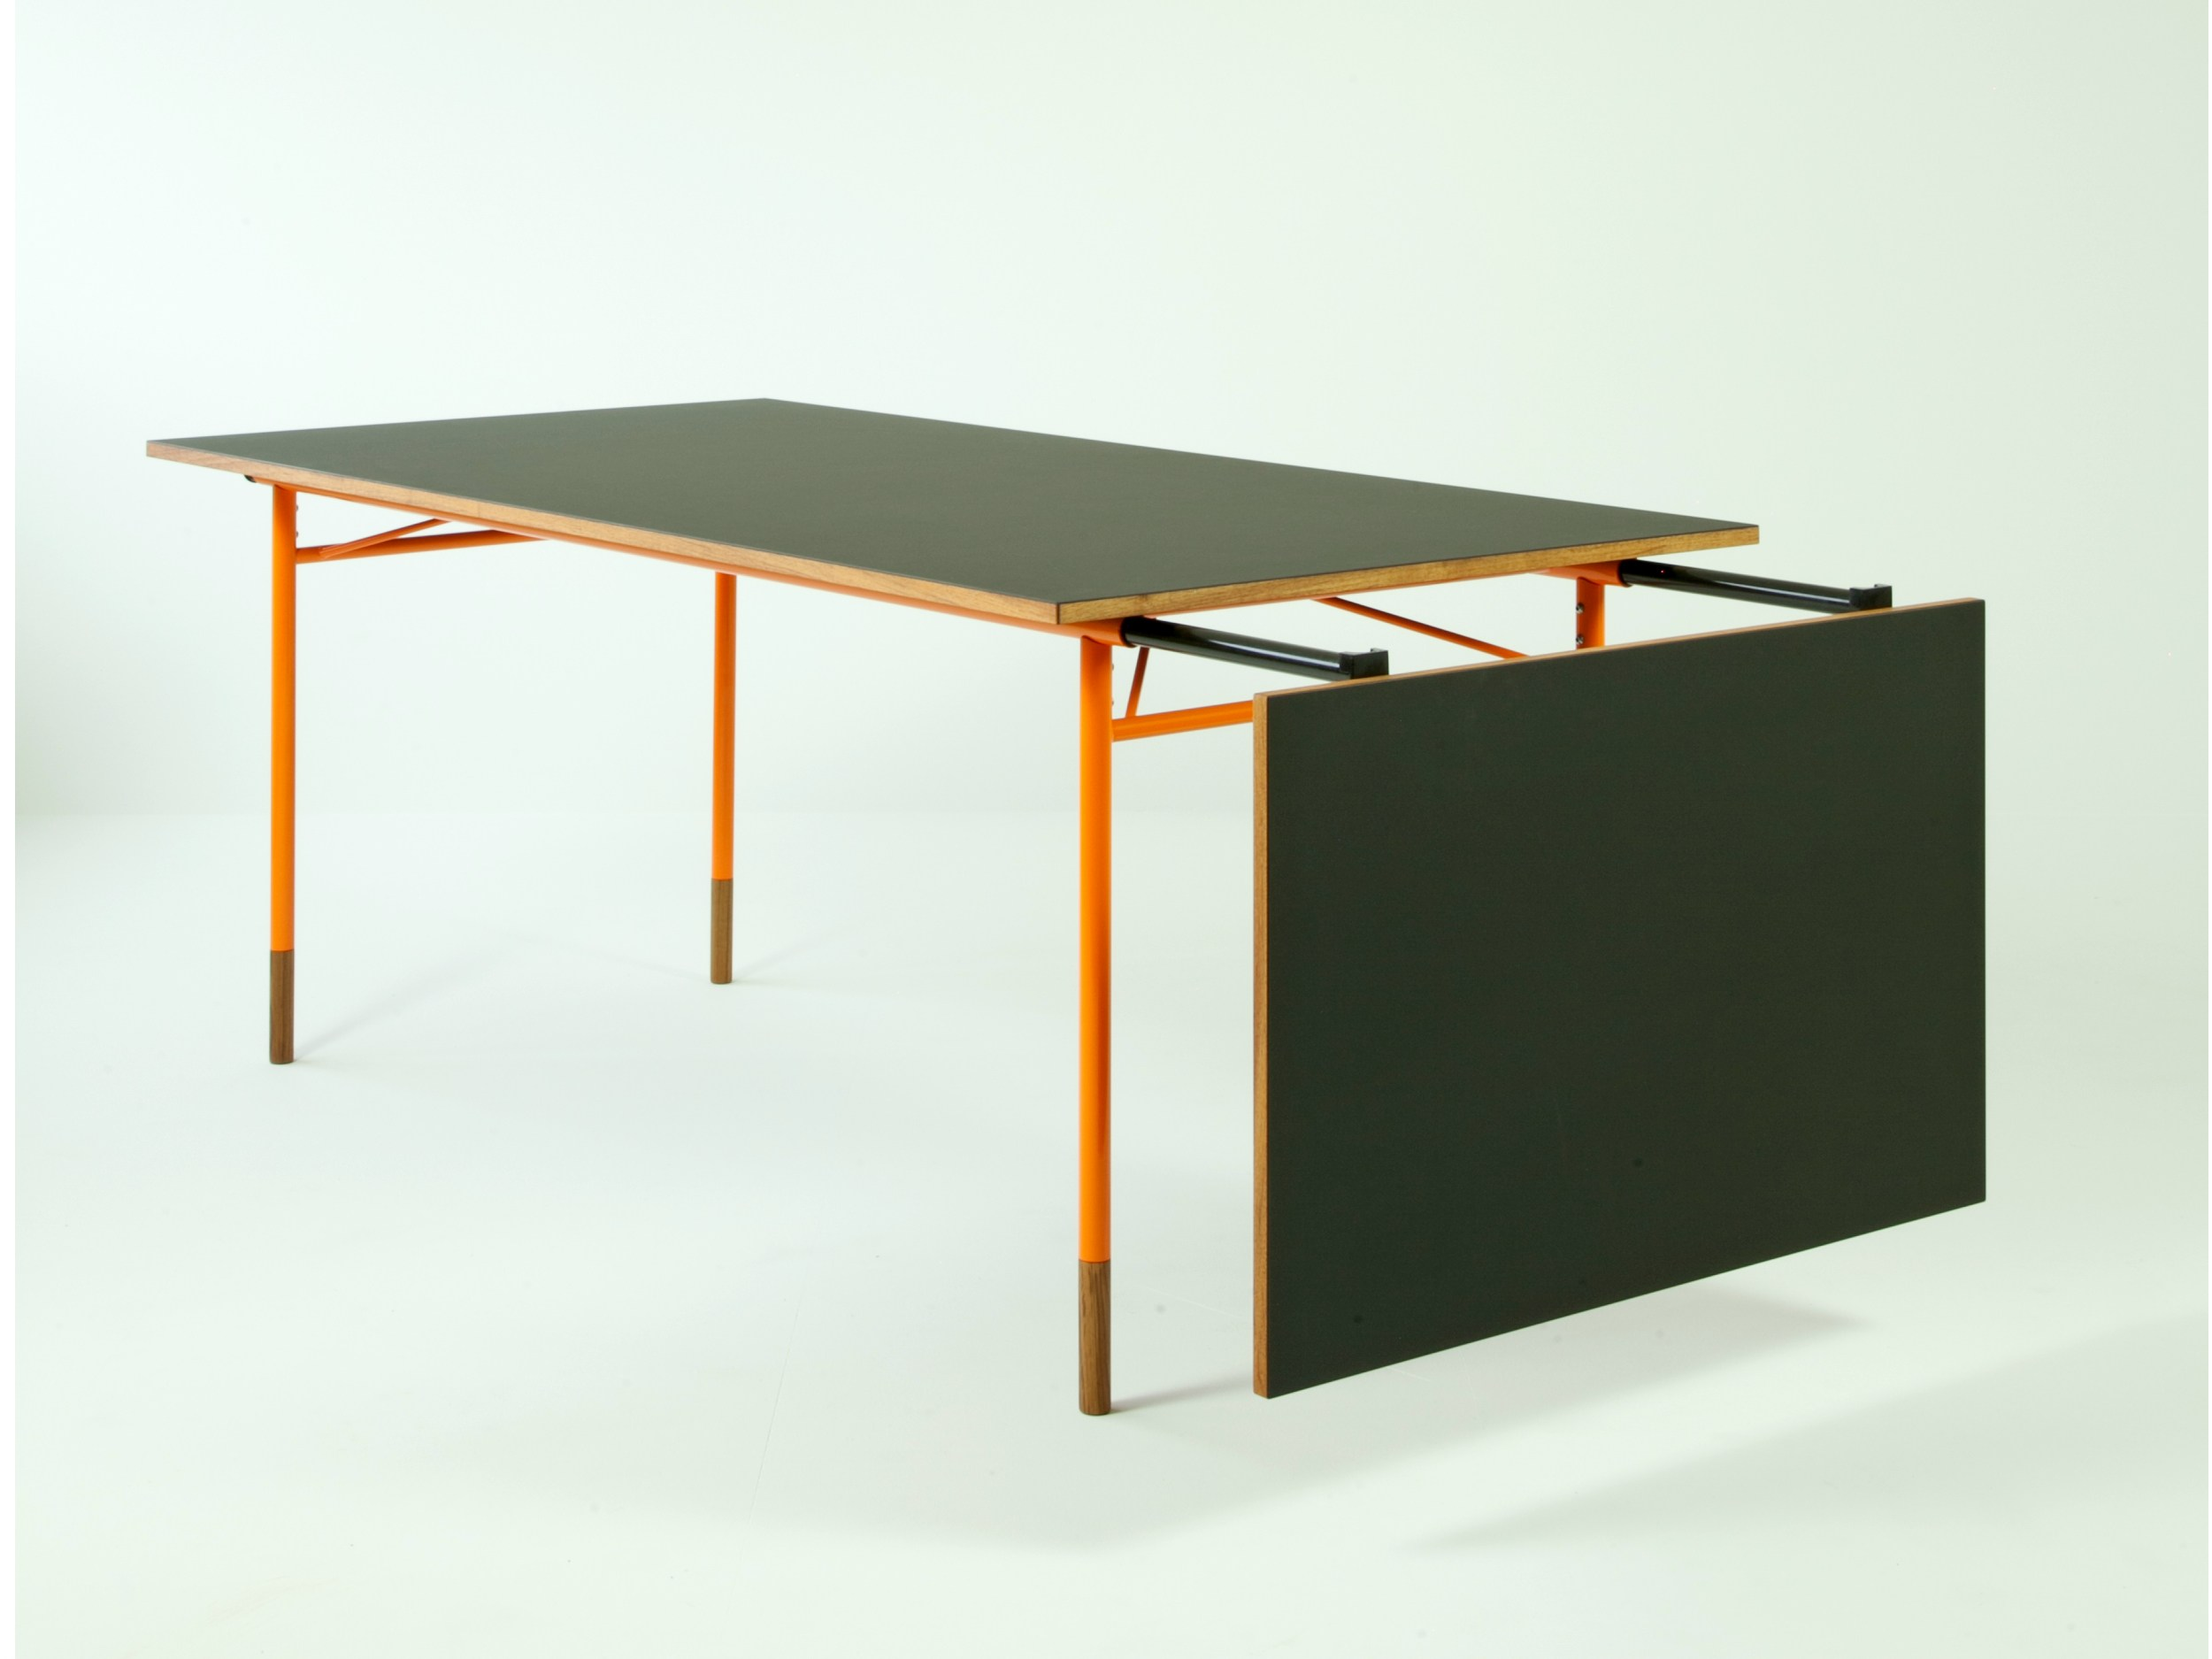 Extending Rectangular Dining Table NYHAVN By Onecollection